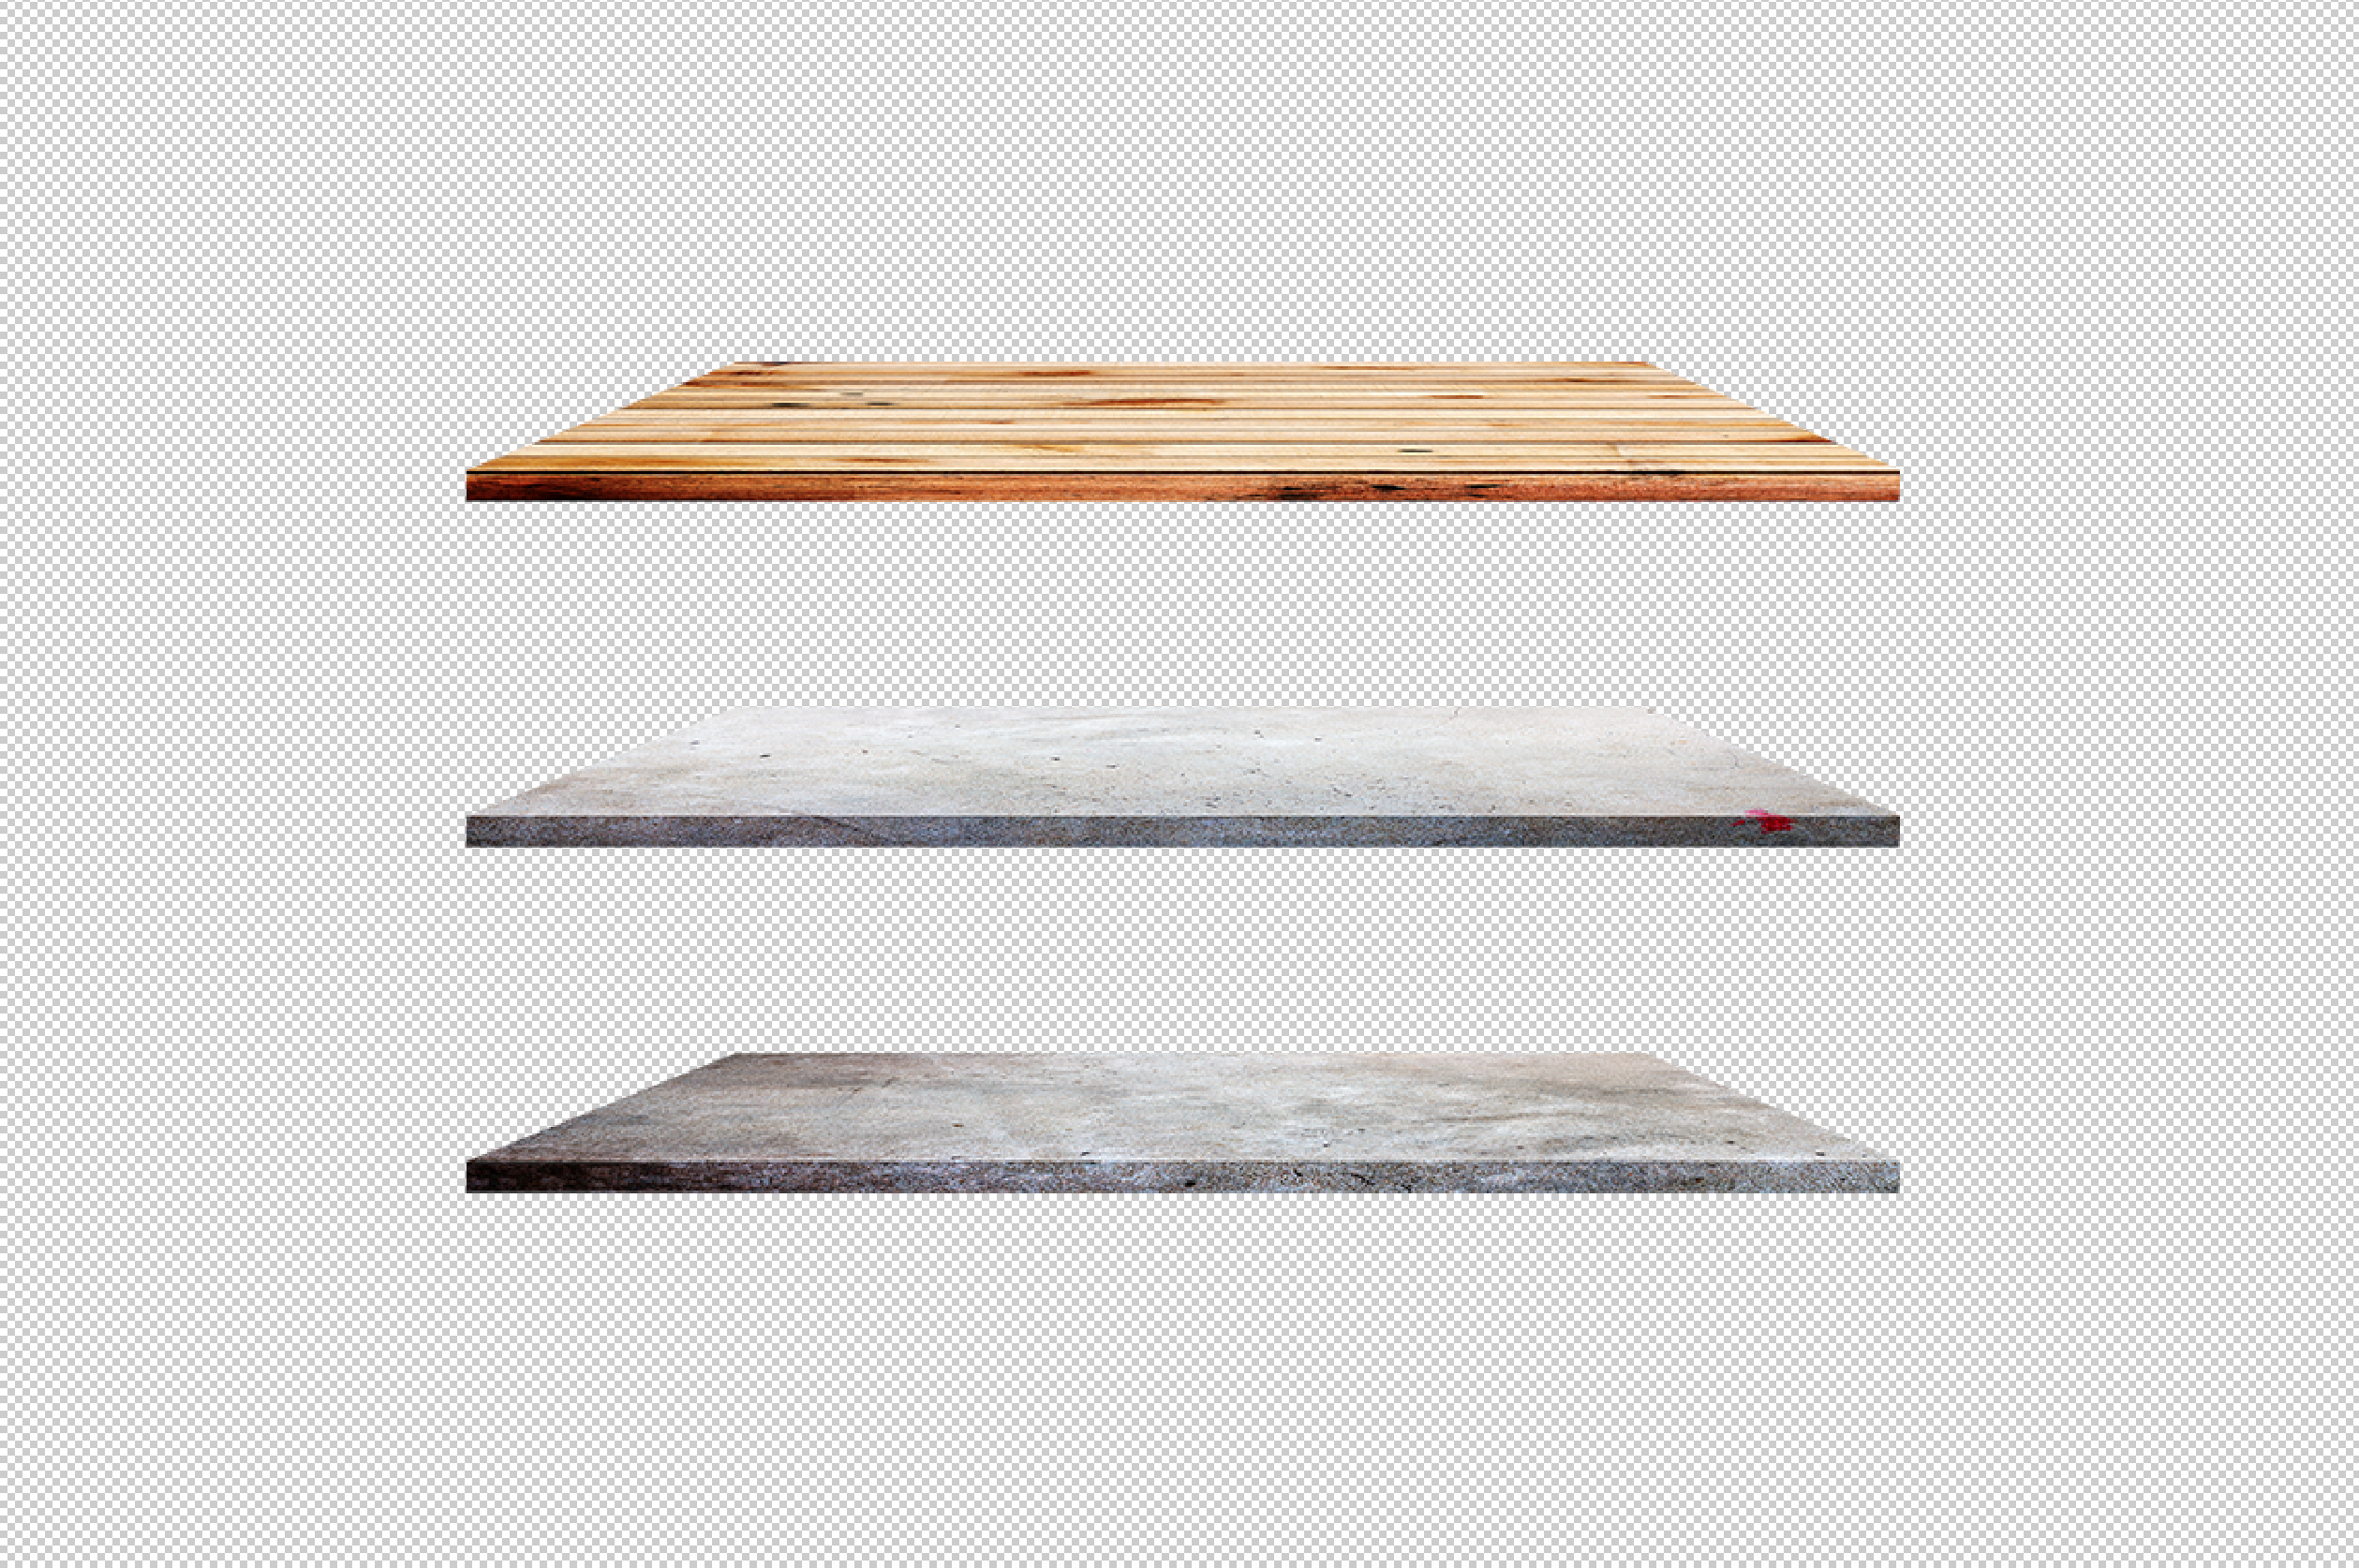 78 Realistic Shelves example image 2